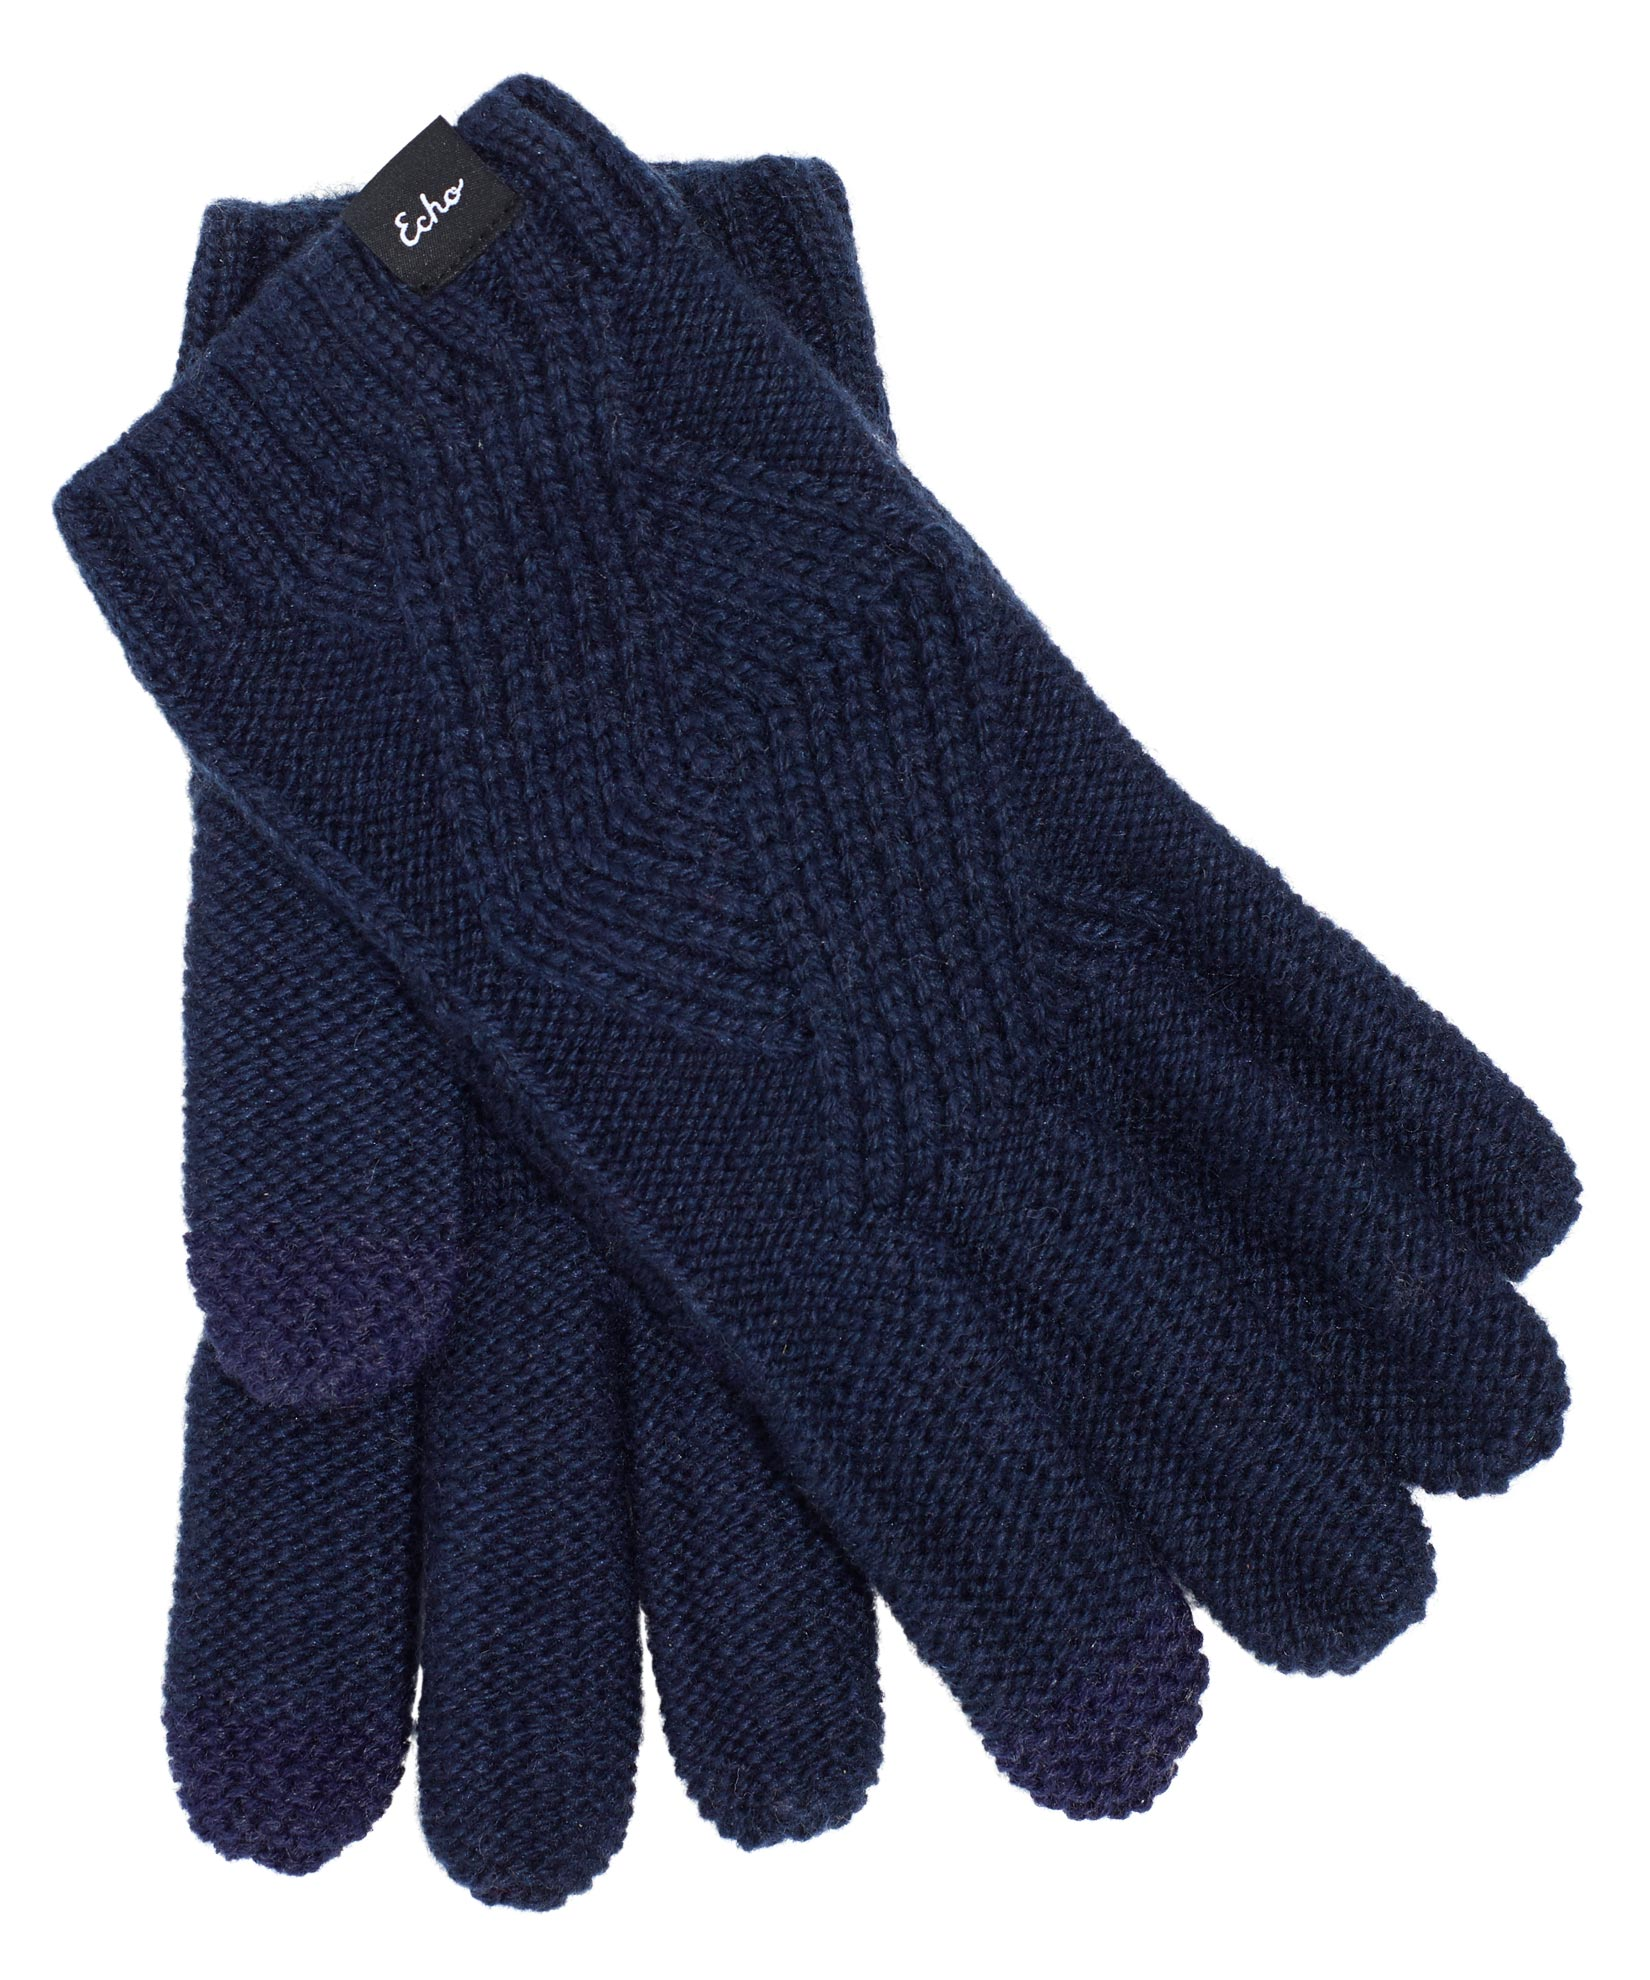 Navy - Recycled Cable Glove